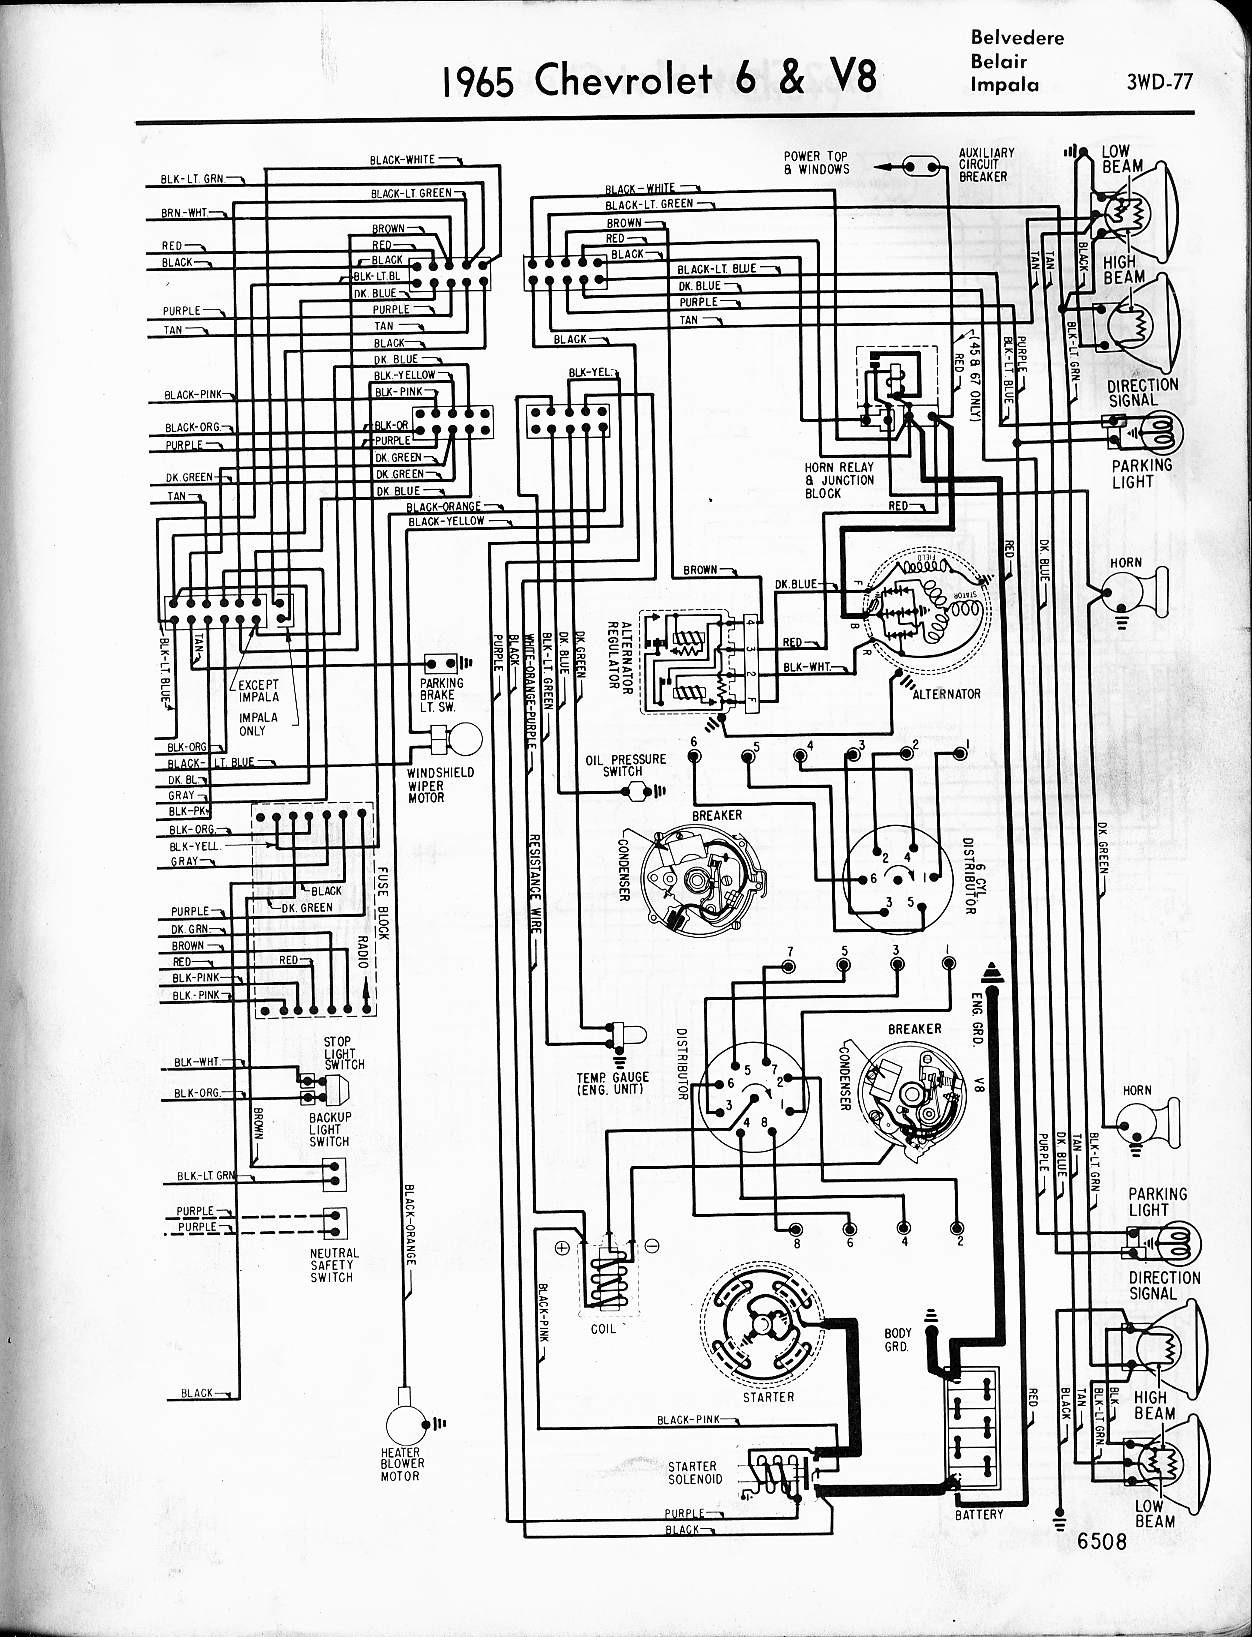 1966 Impala Wiring Schematic - Service Repair Manual on